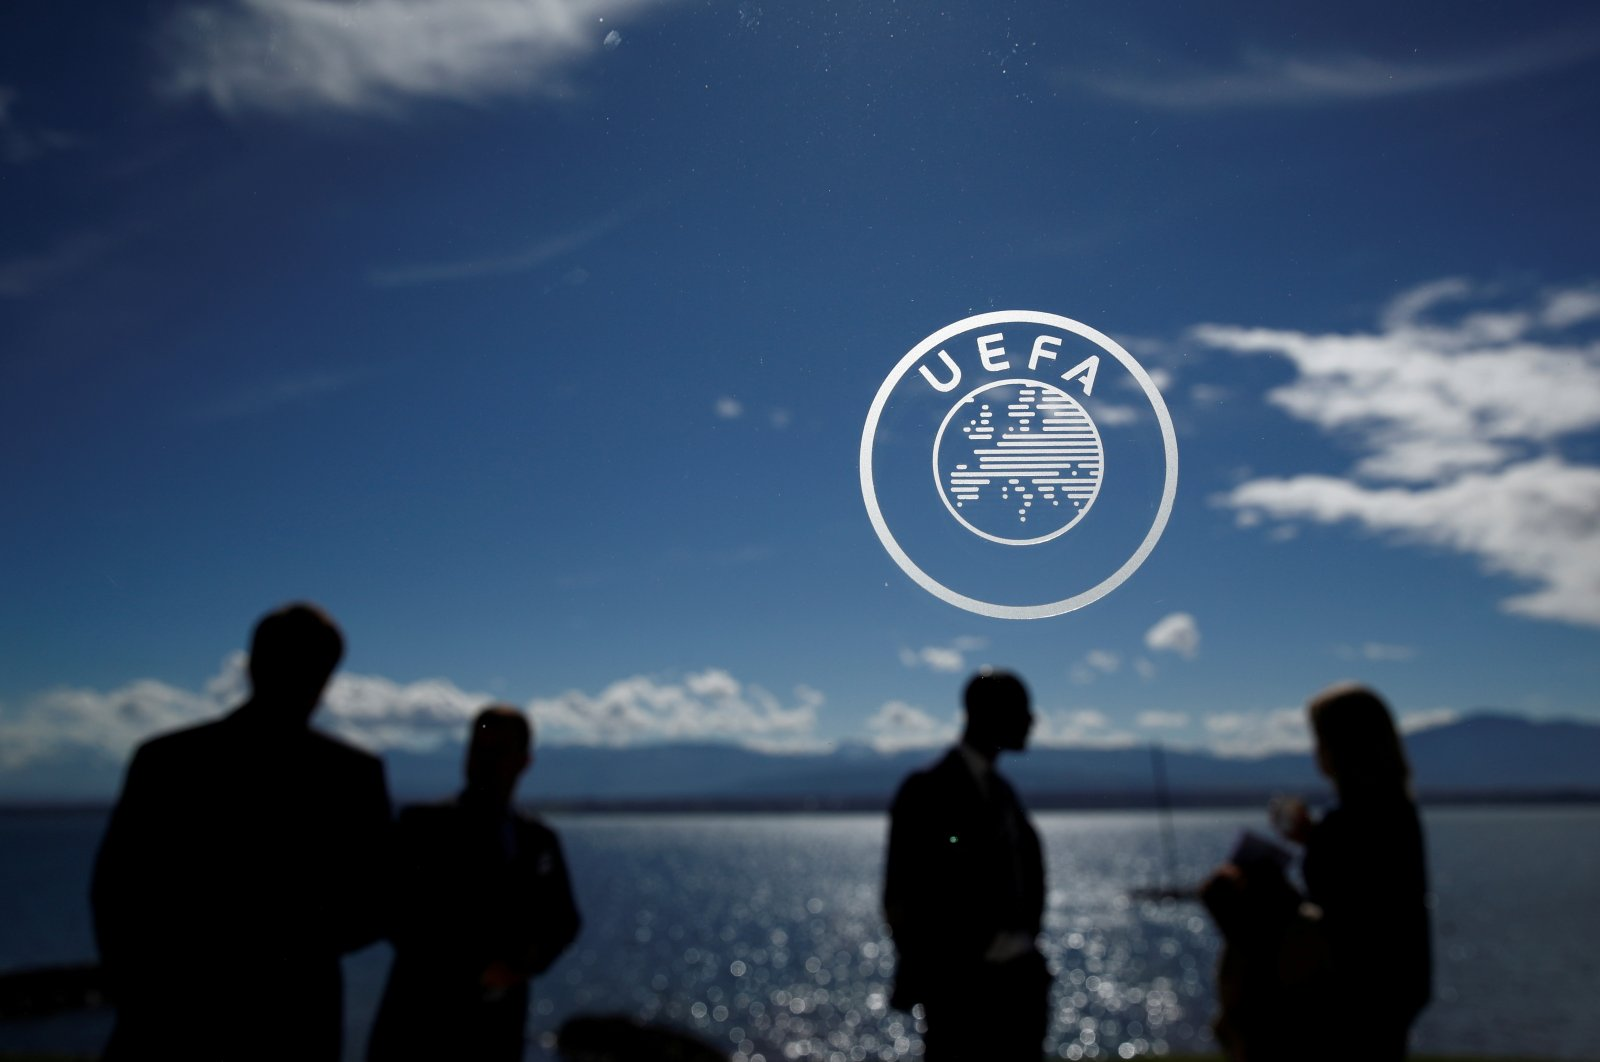 The UEFA logo is seen at its headquarters in Nyon, Switzerland, April 13, 2018. (Reuters Photo)